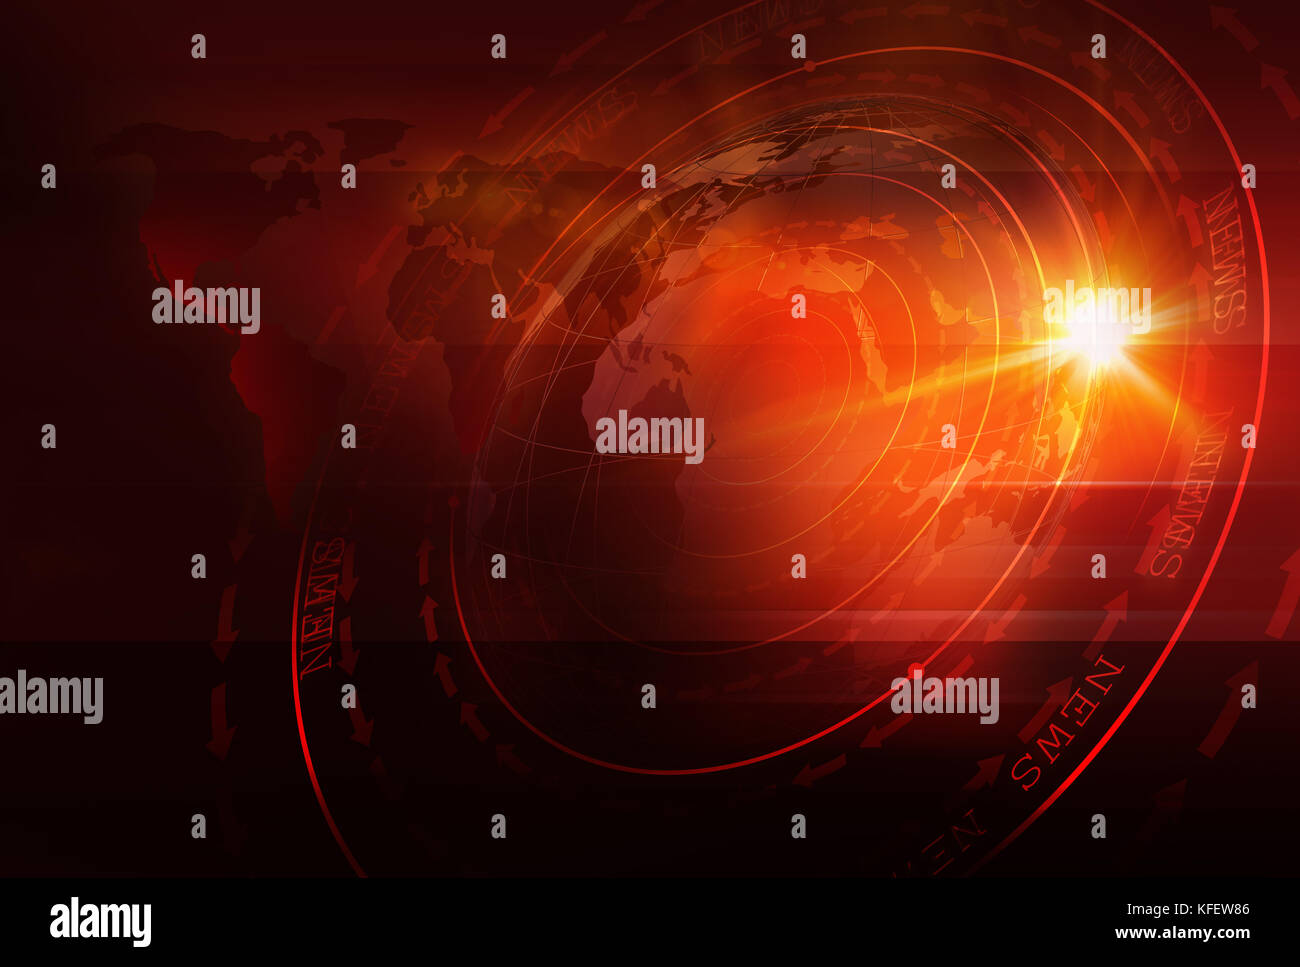 Graphical sport news background with world map and round circles graphical sport news background with world map and round circles with layers of stages text on ground 3d illustration 3d render gumiabroncs Image collections